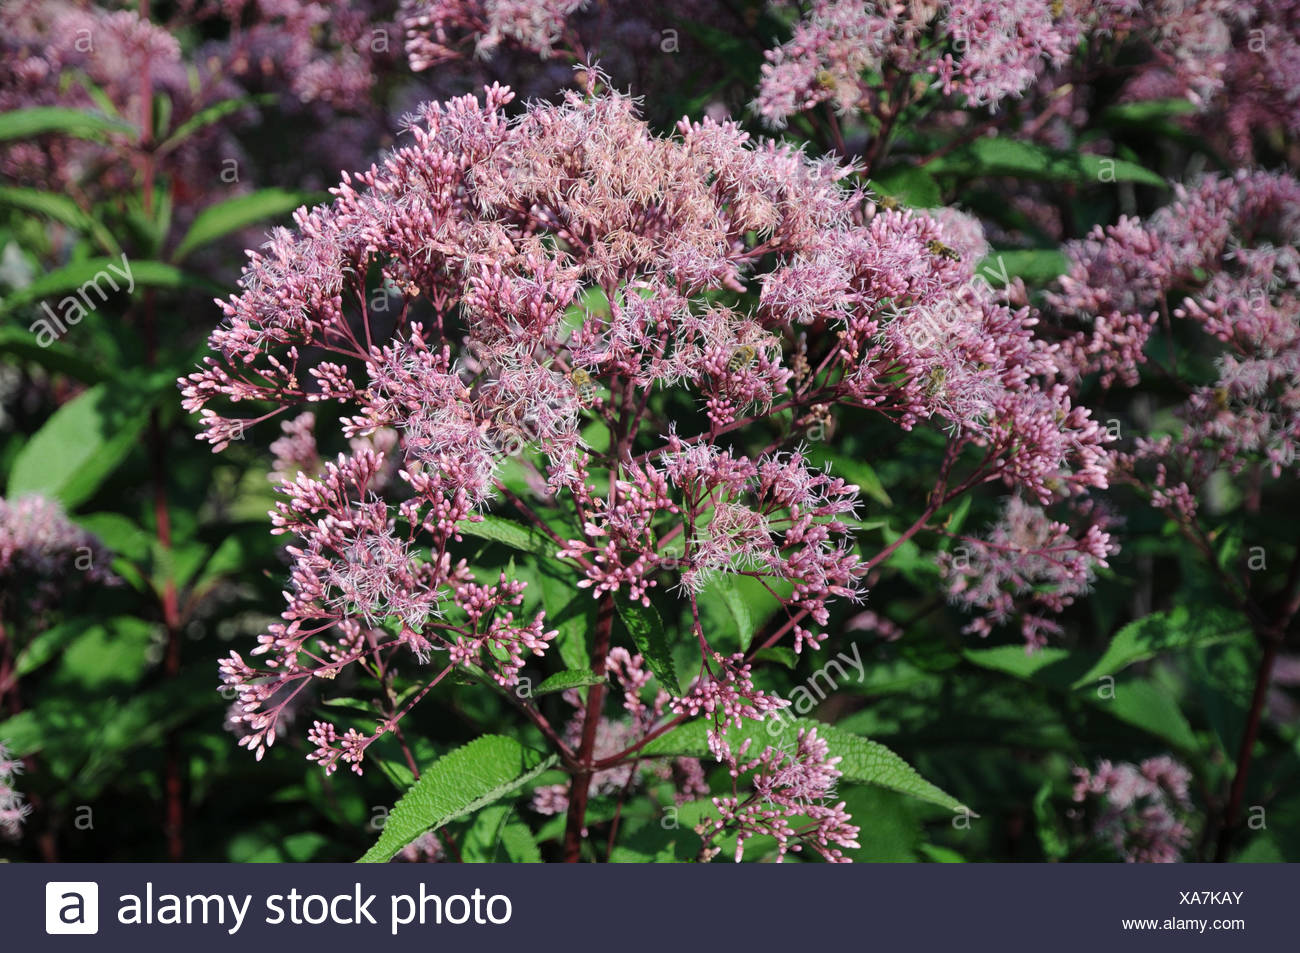 Joe pye weed - Stock Image